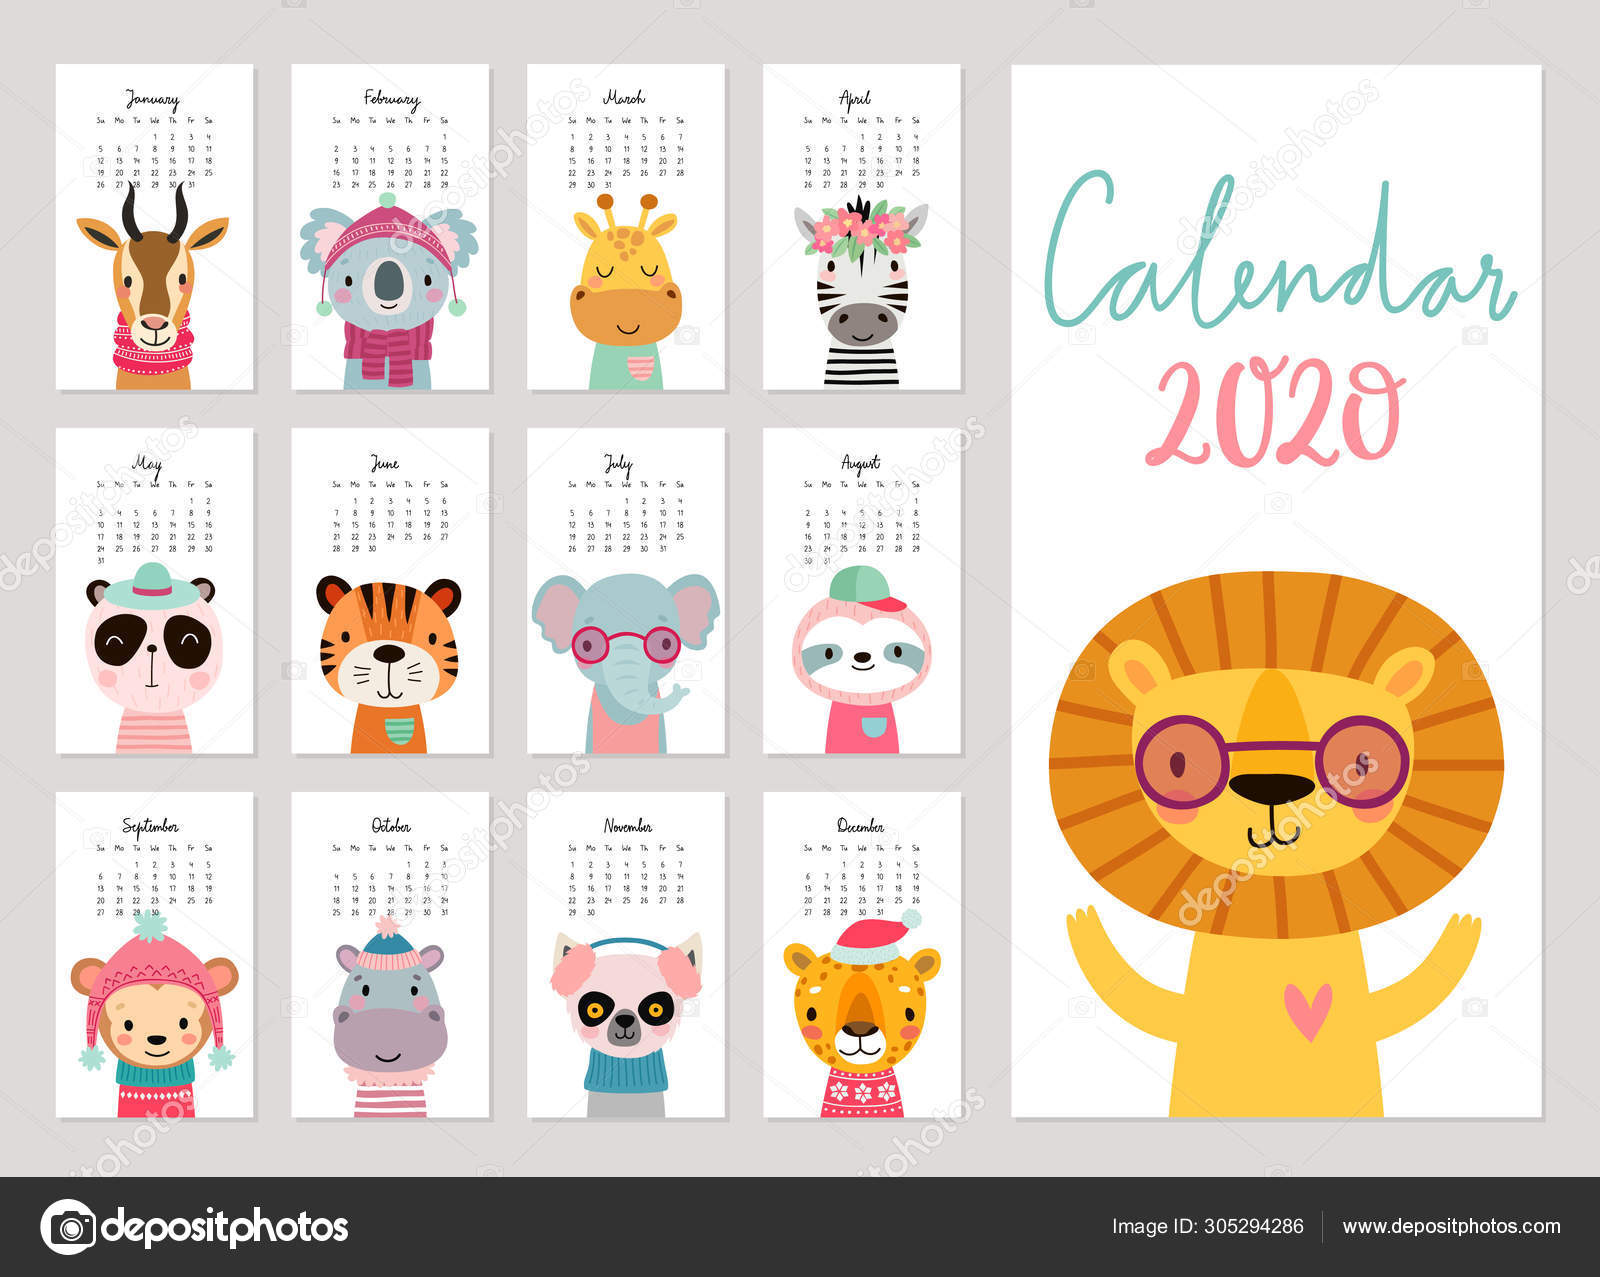 https://st4.depositphotos.com/1046771/30529/v/1600/depositphotos_305294286-stock-illustration-calendar-2020-cute-monthly-calendar.jpg